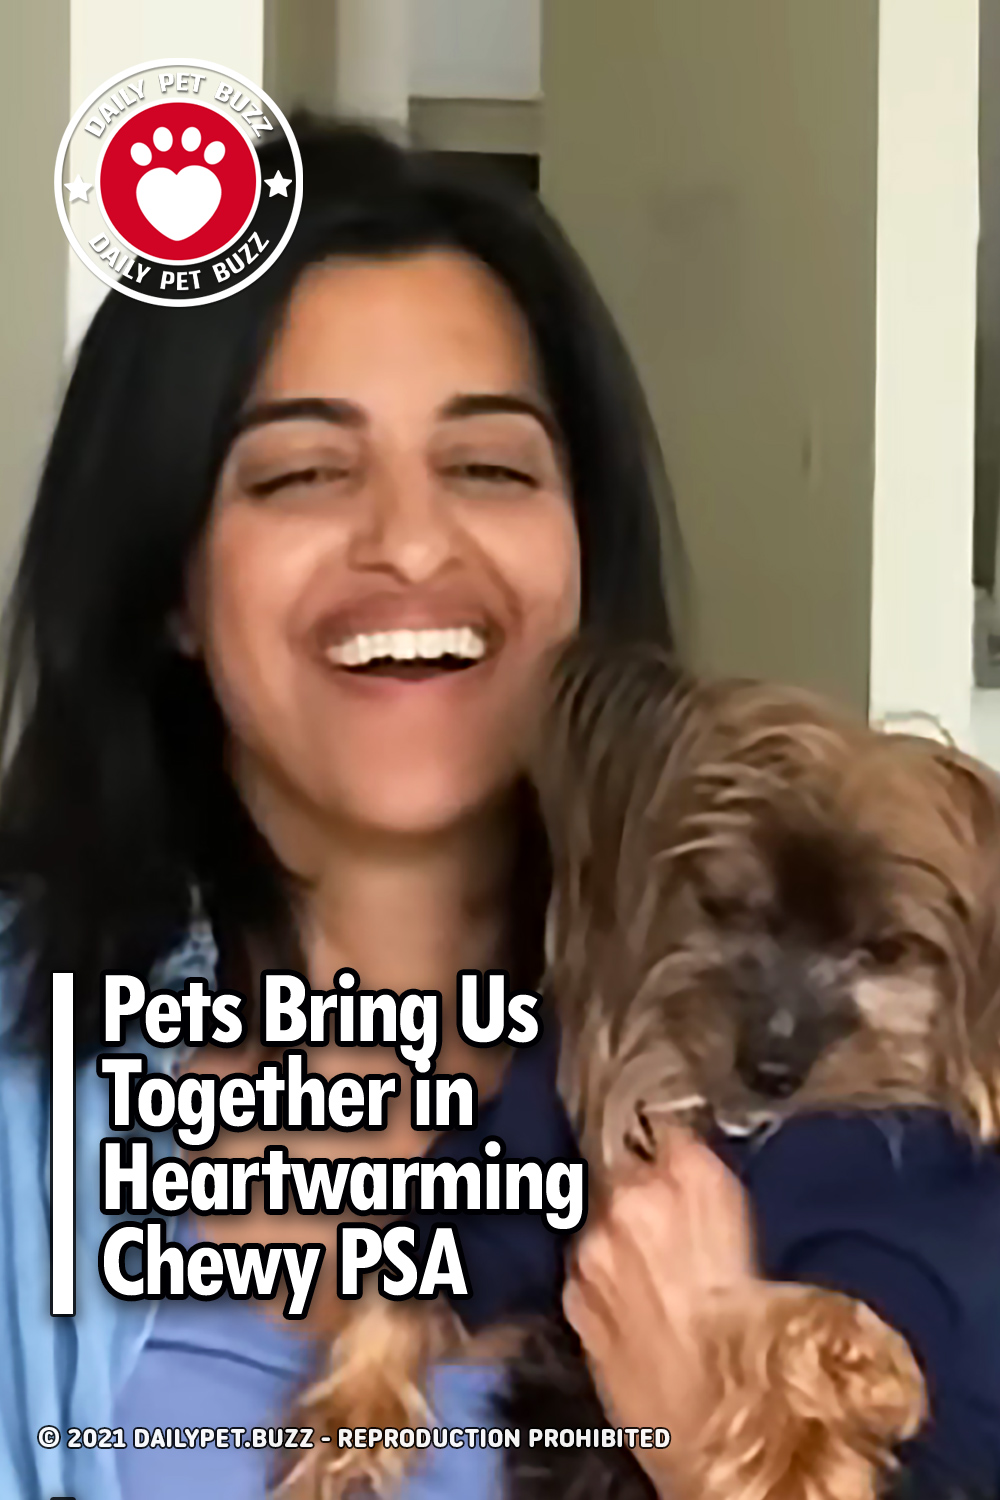 Pets Bring Us Together in Heartwarming Chewy PSA